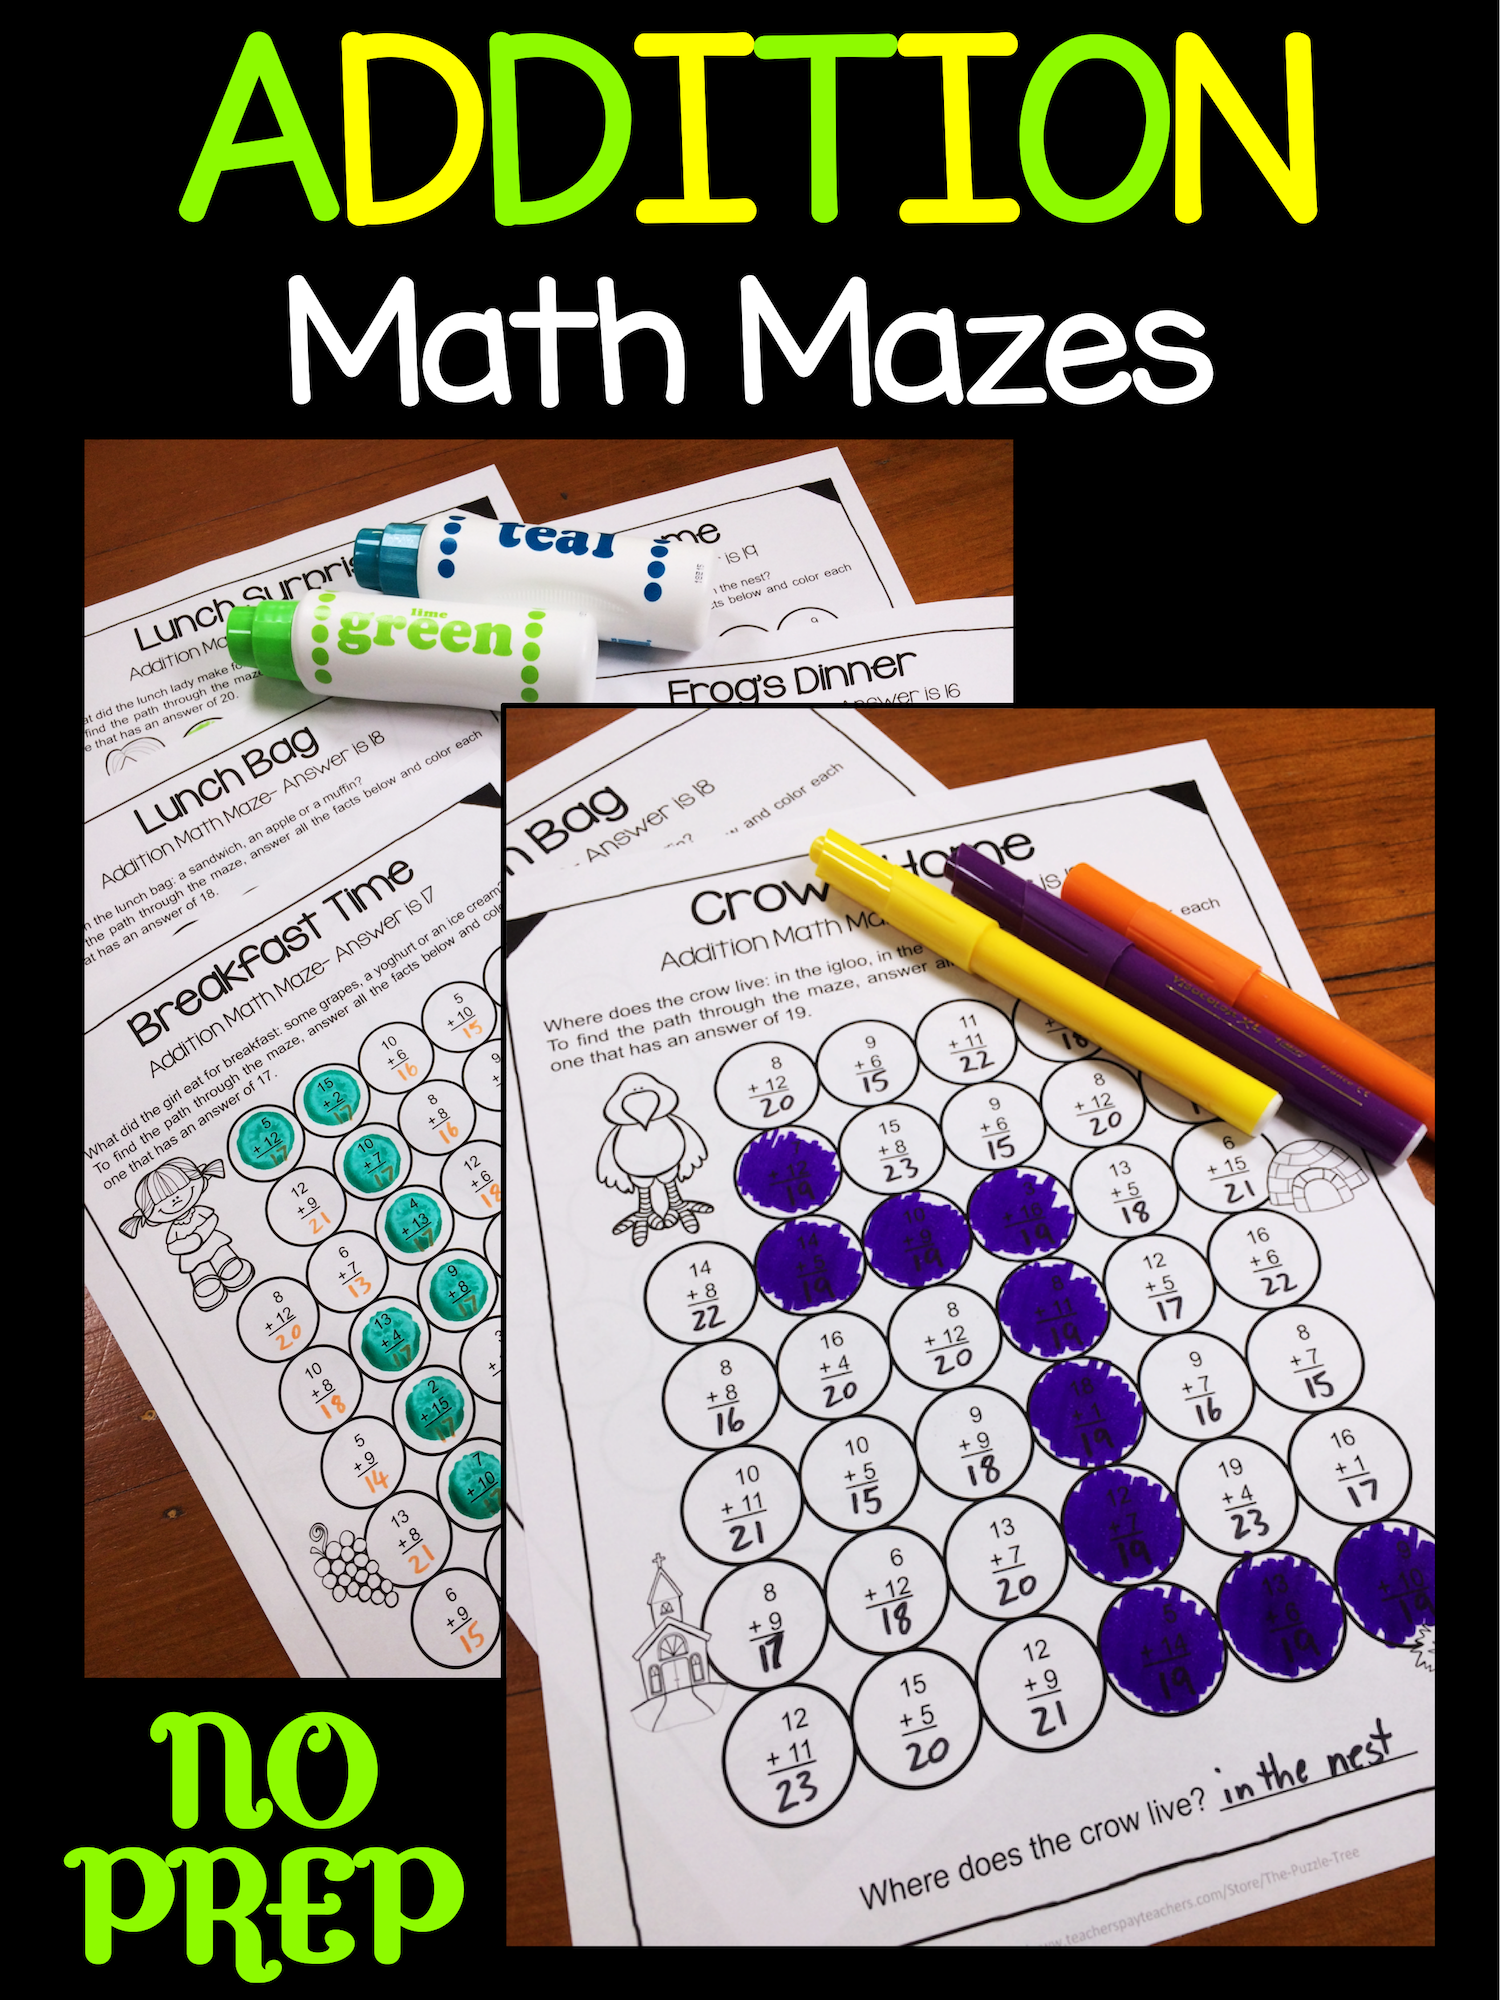 Have Fun With Addition In The Classroom With These